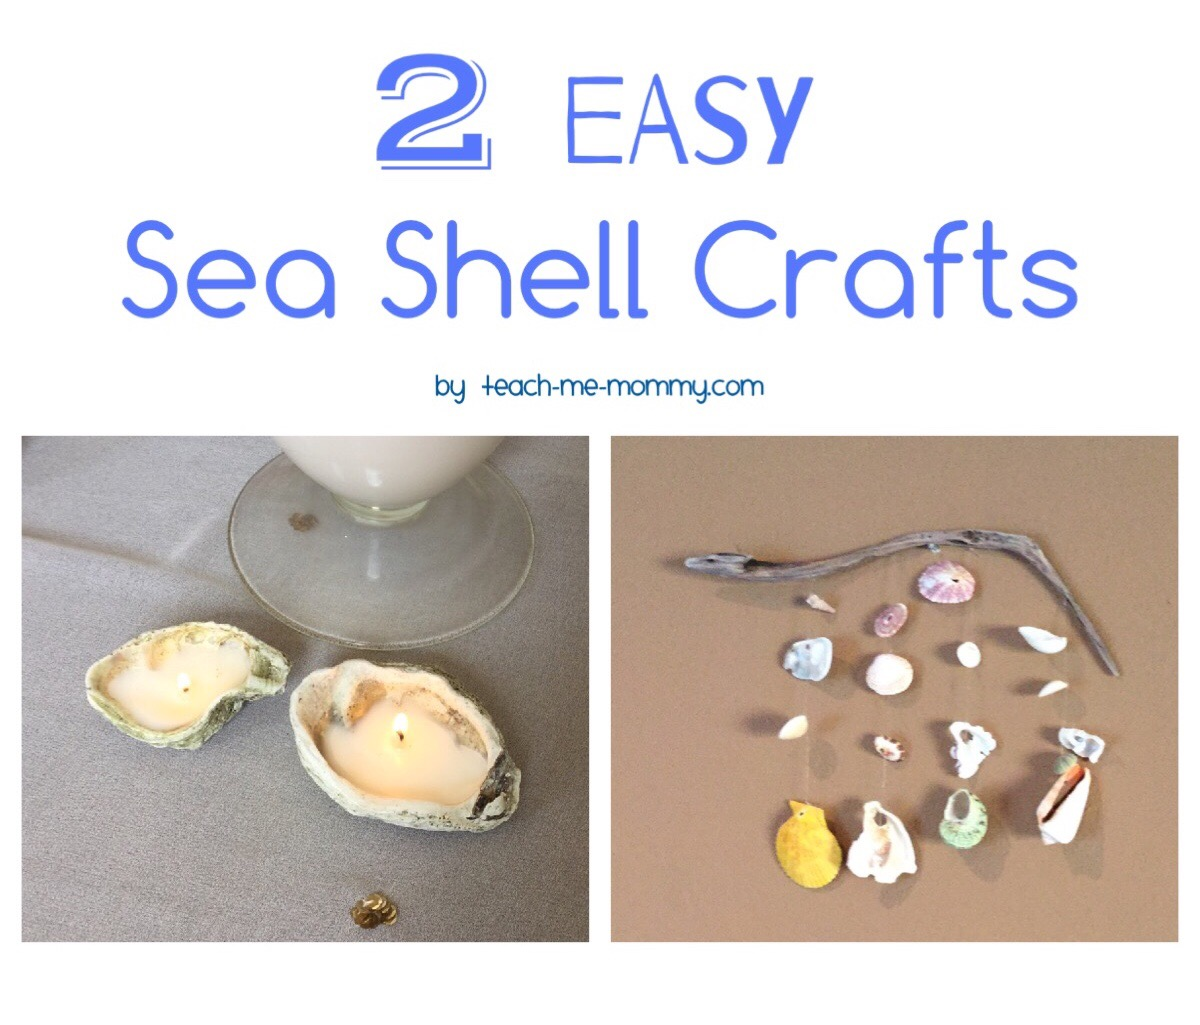 2 Easy Sea Shell Crafts Teach Me Mommy